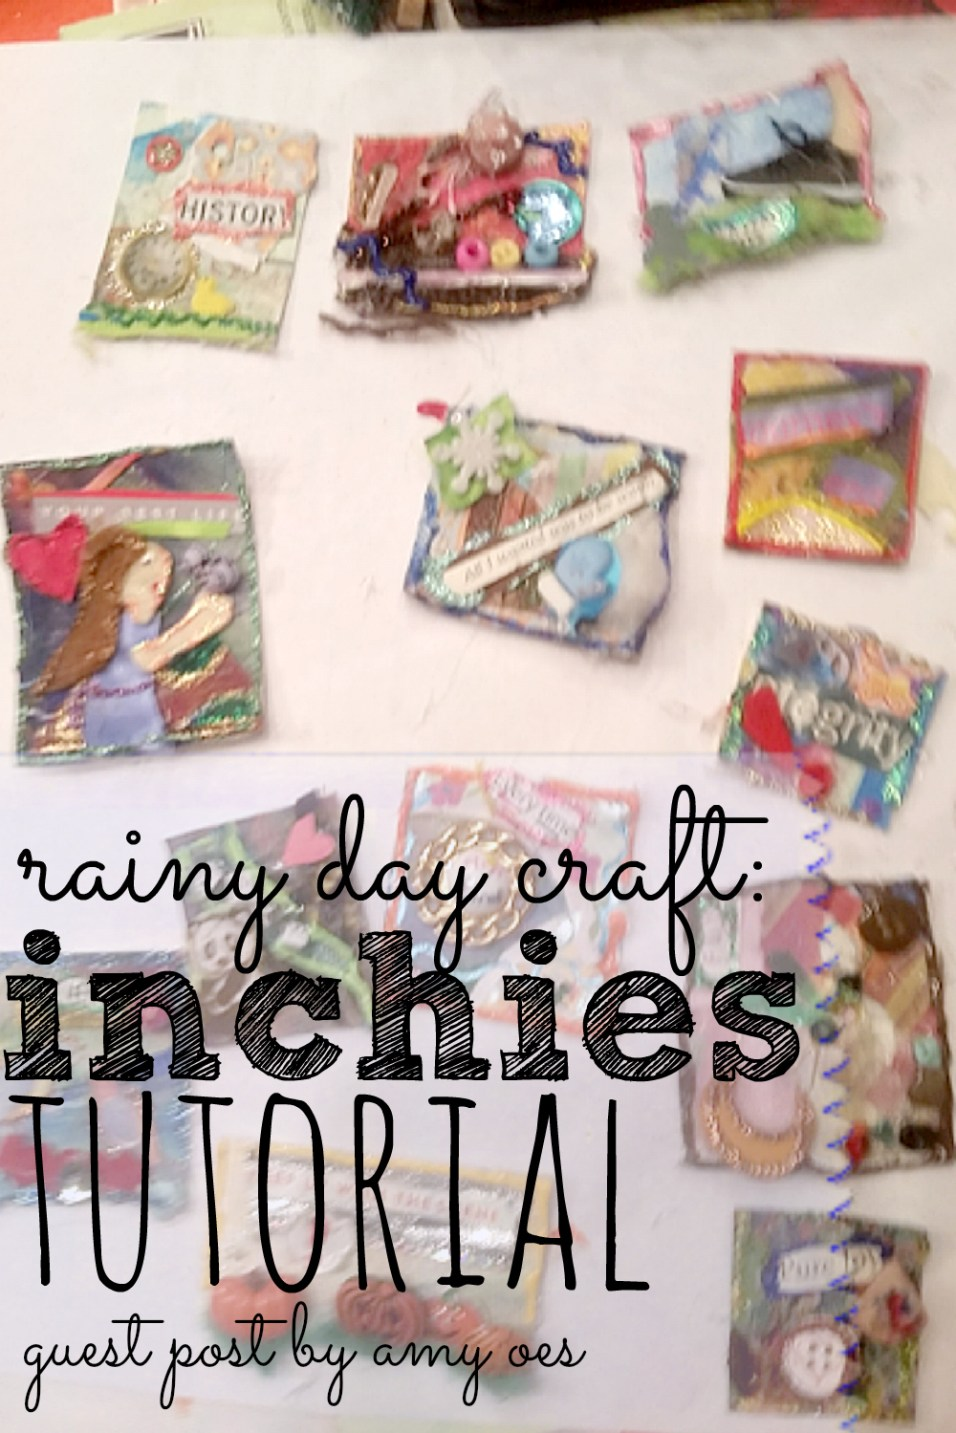 Looking for a fun project to help you destress or keep the kids busy? Make some inchies and talk about expressionism!